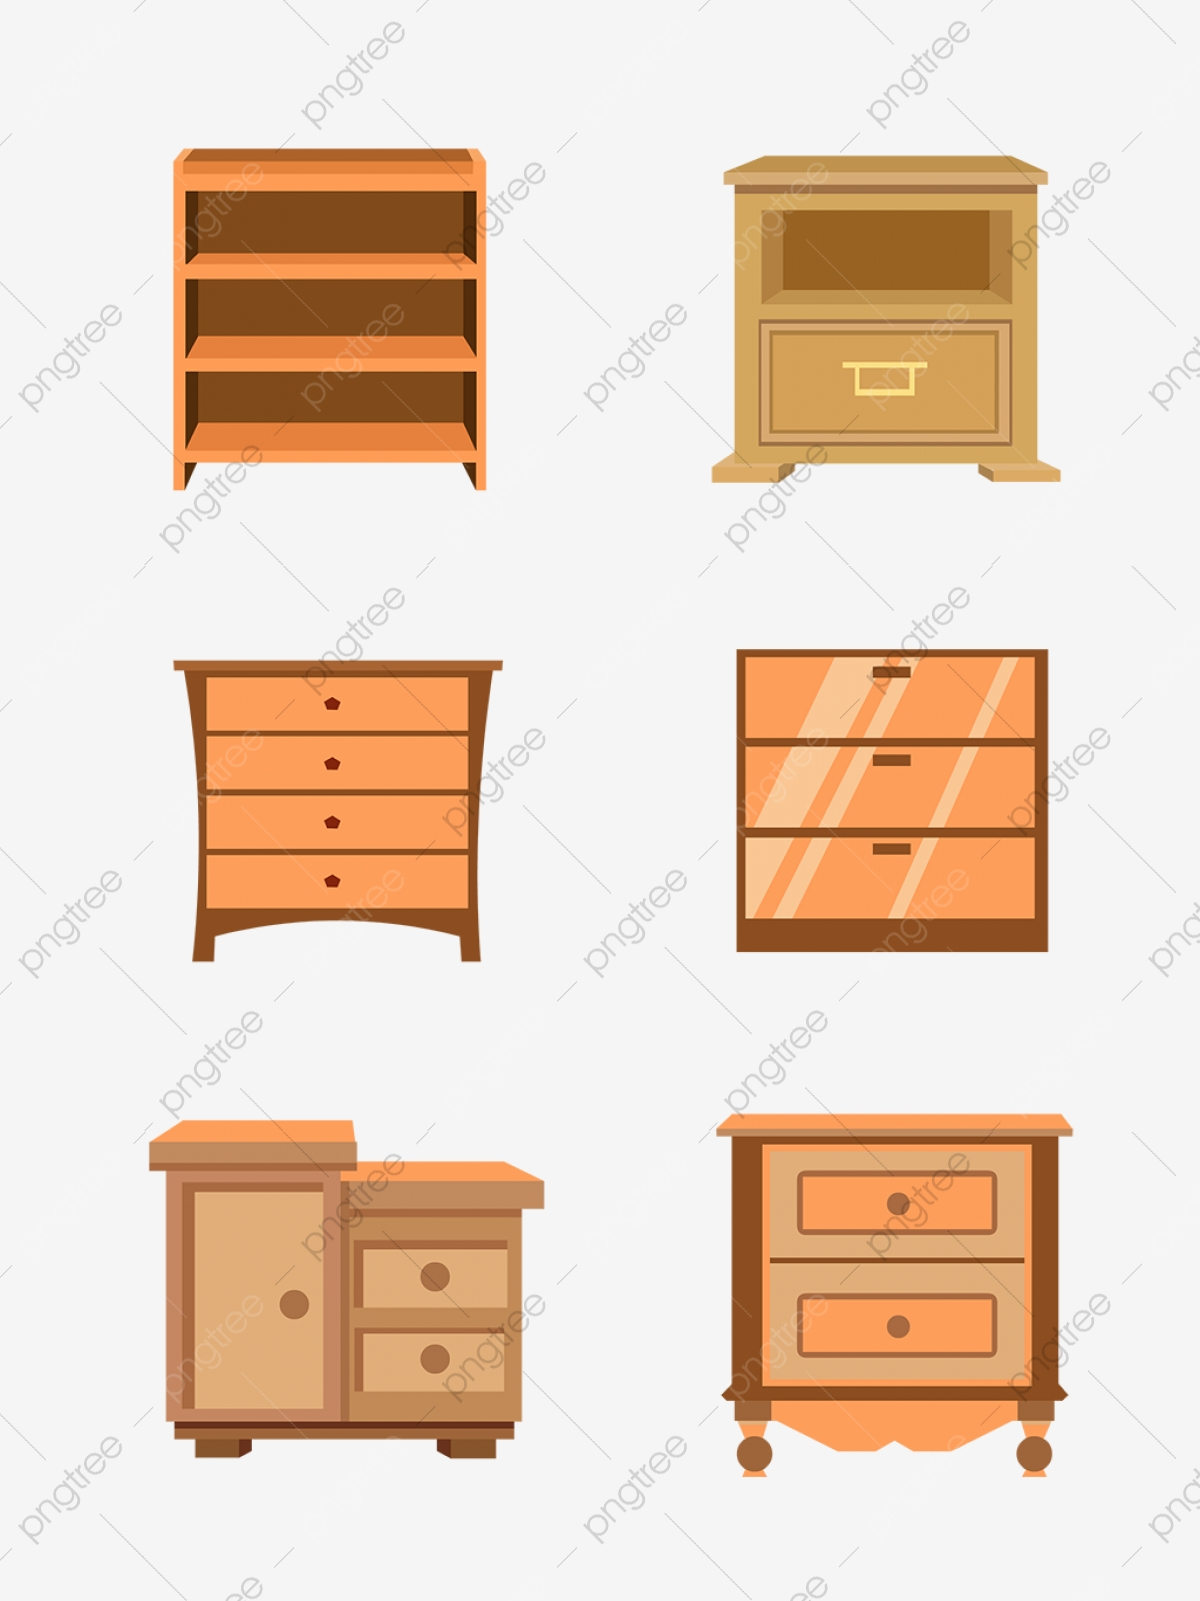 Hand Drawn Cartoon Furniture Vector Small Cabinet Hand Painted Furniture Cartoon Furniture Small Cabinets Png And Vector With Transparent Background For Free Download